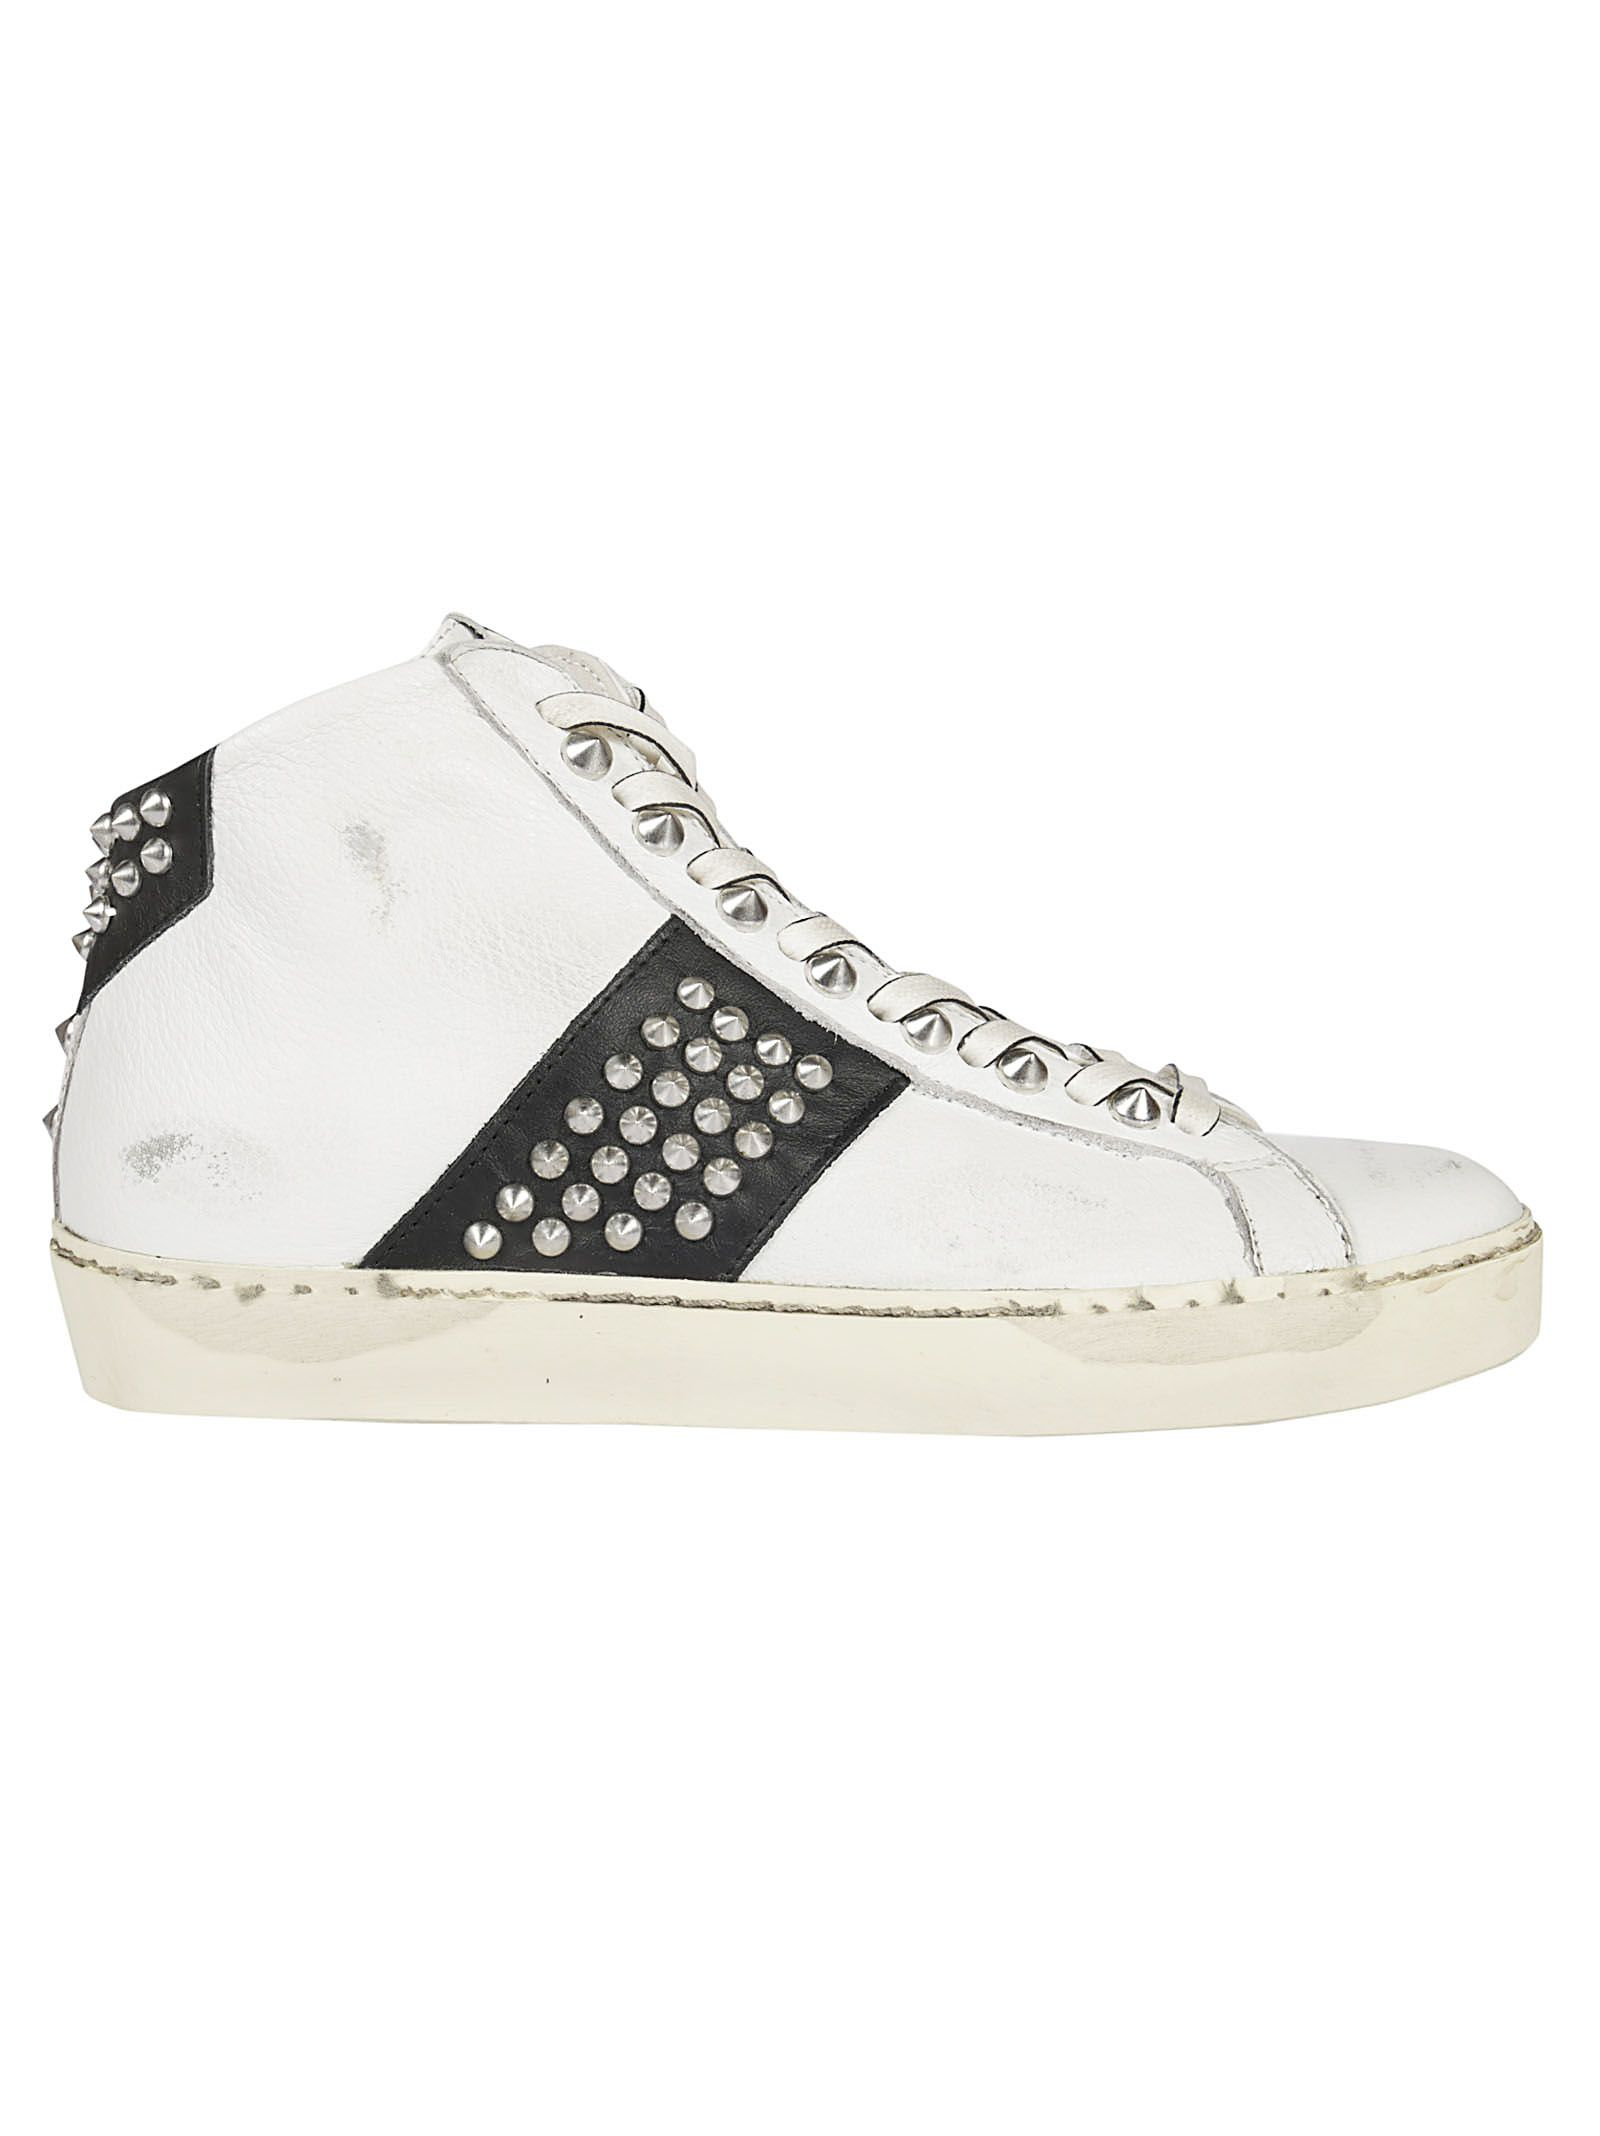 Leather Crown Wiconic Sneakers